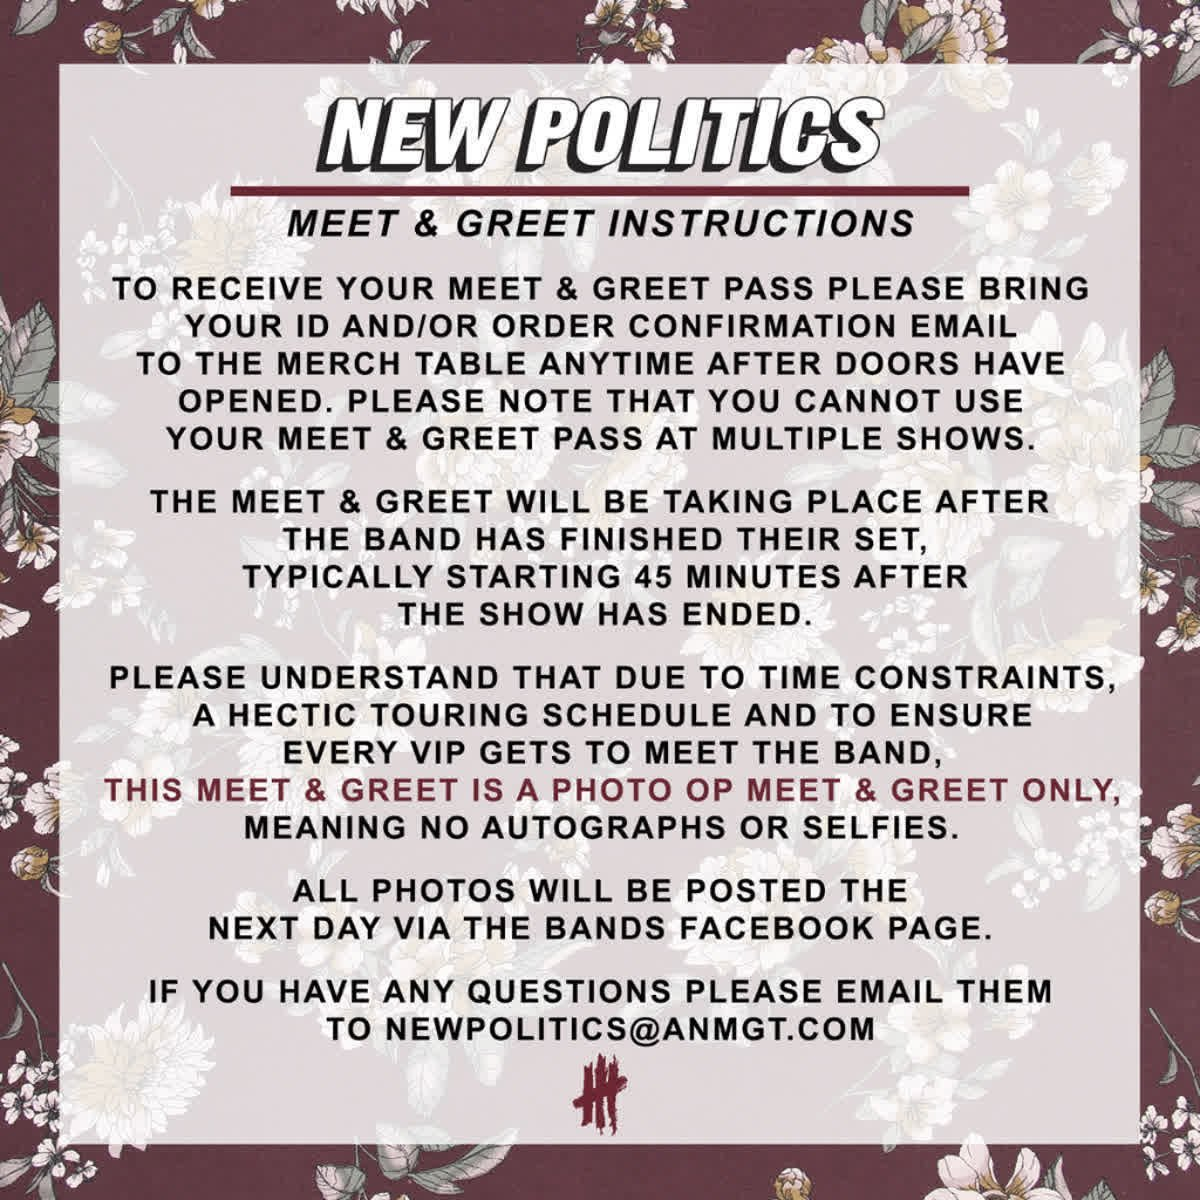 New politics on twitter get a meet greet with us by ordering 729 pm 12 feb 2018 m4hsunfo Gallery